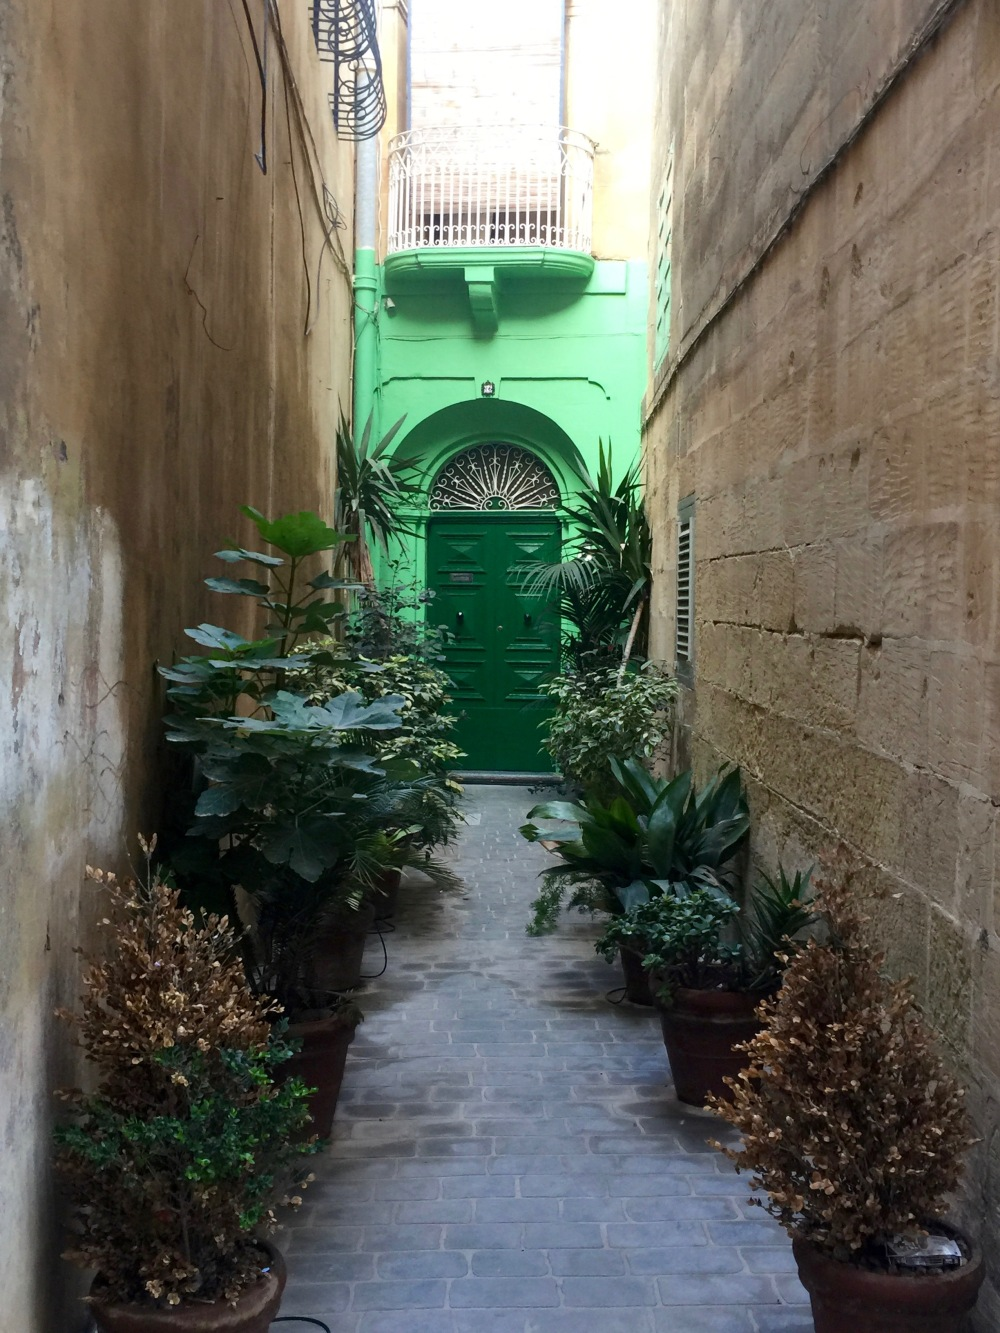 Door to nowhere? Or just a shortcut back to Malta?